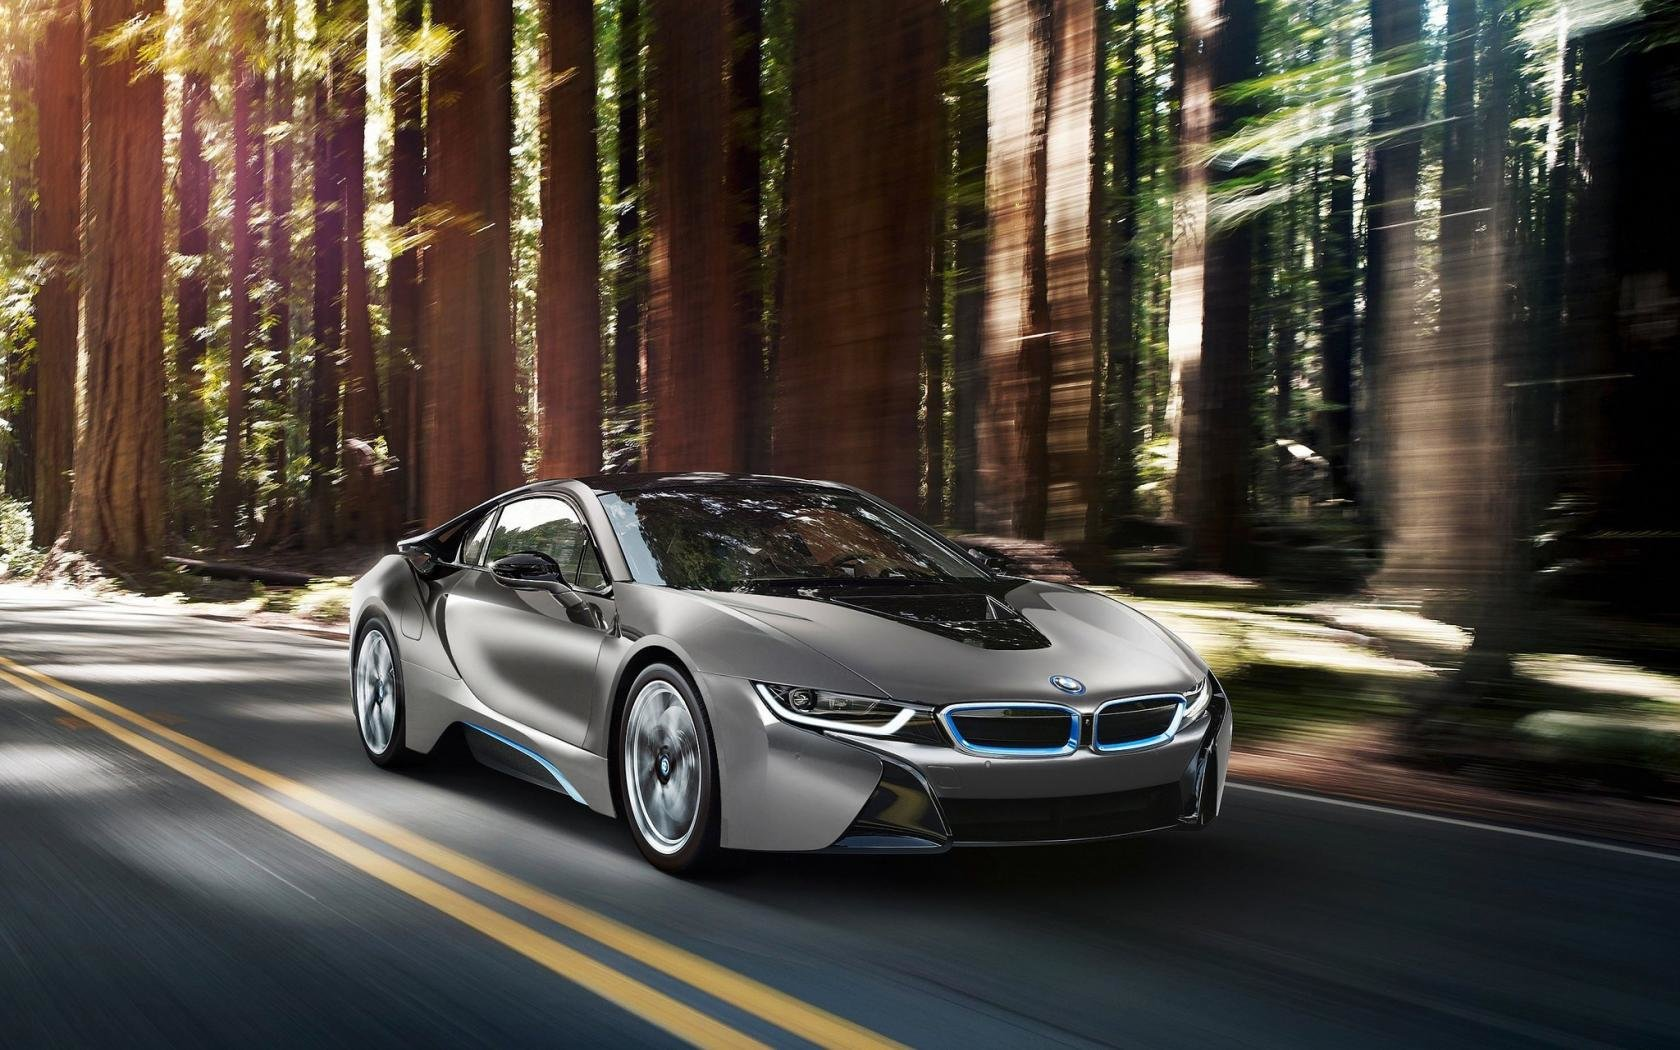 Download Hd 1680x1050 Bmw I8 Pc Wallpaper Id 126917 For Free